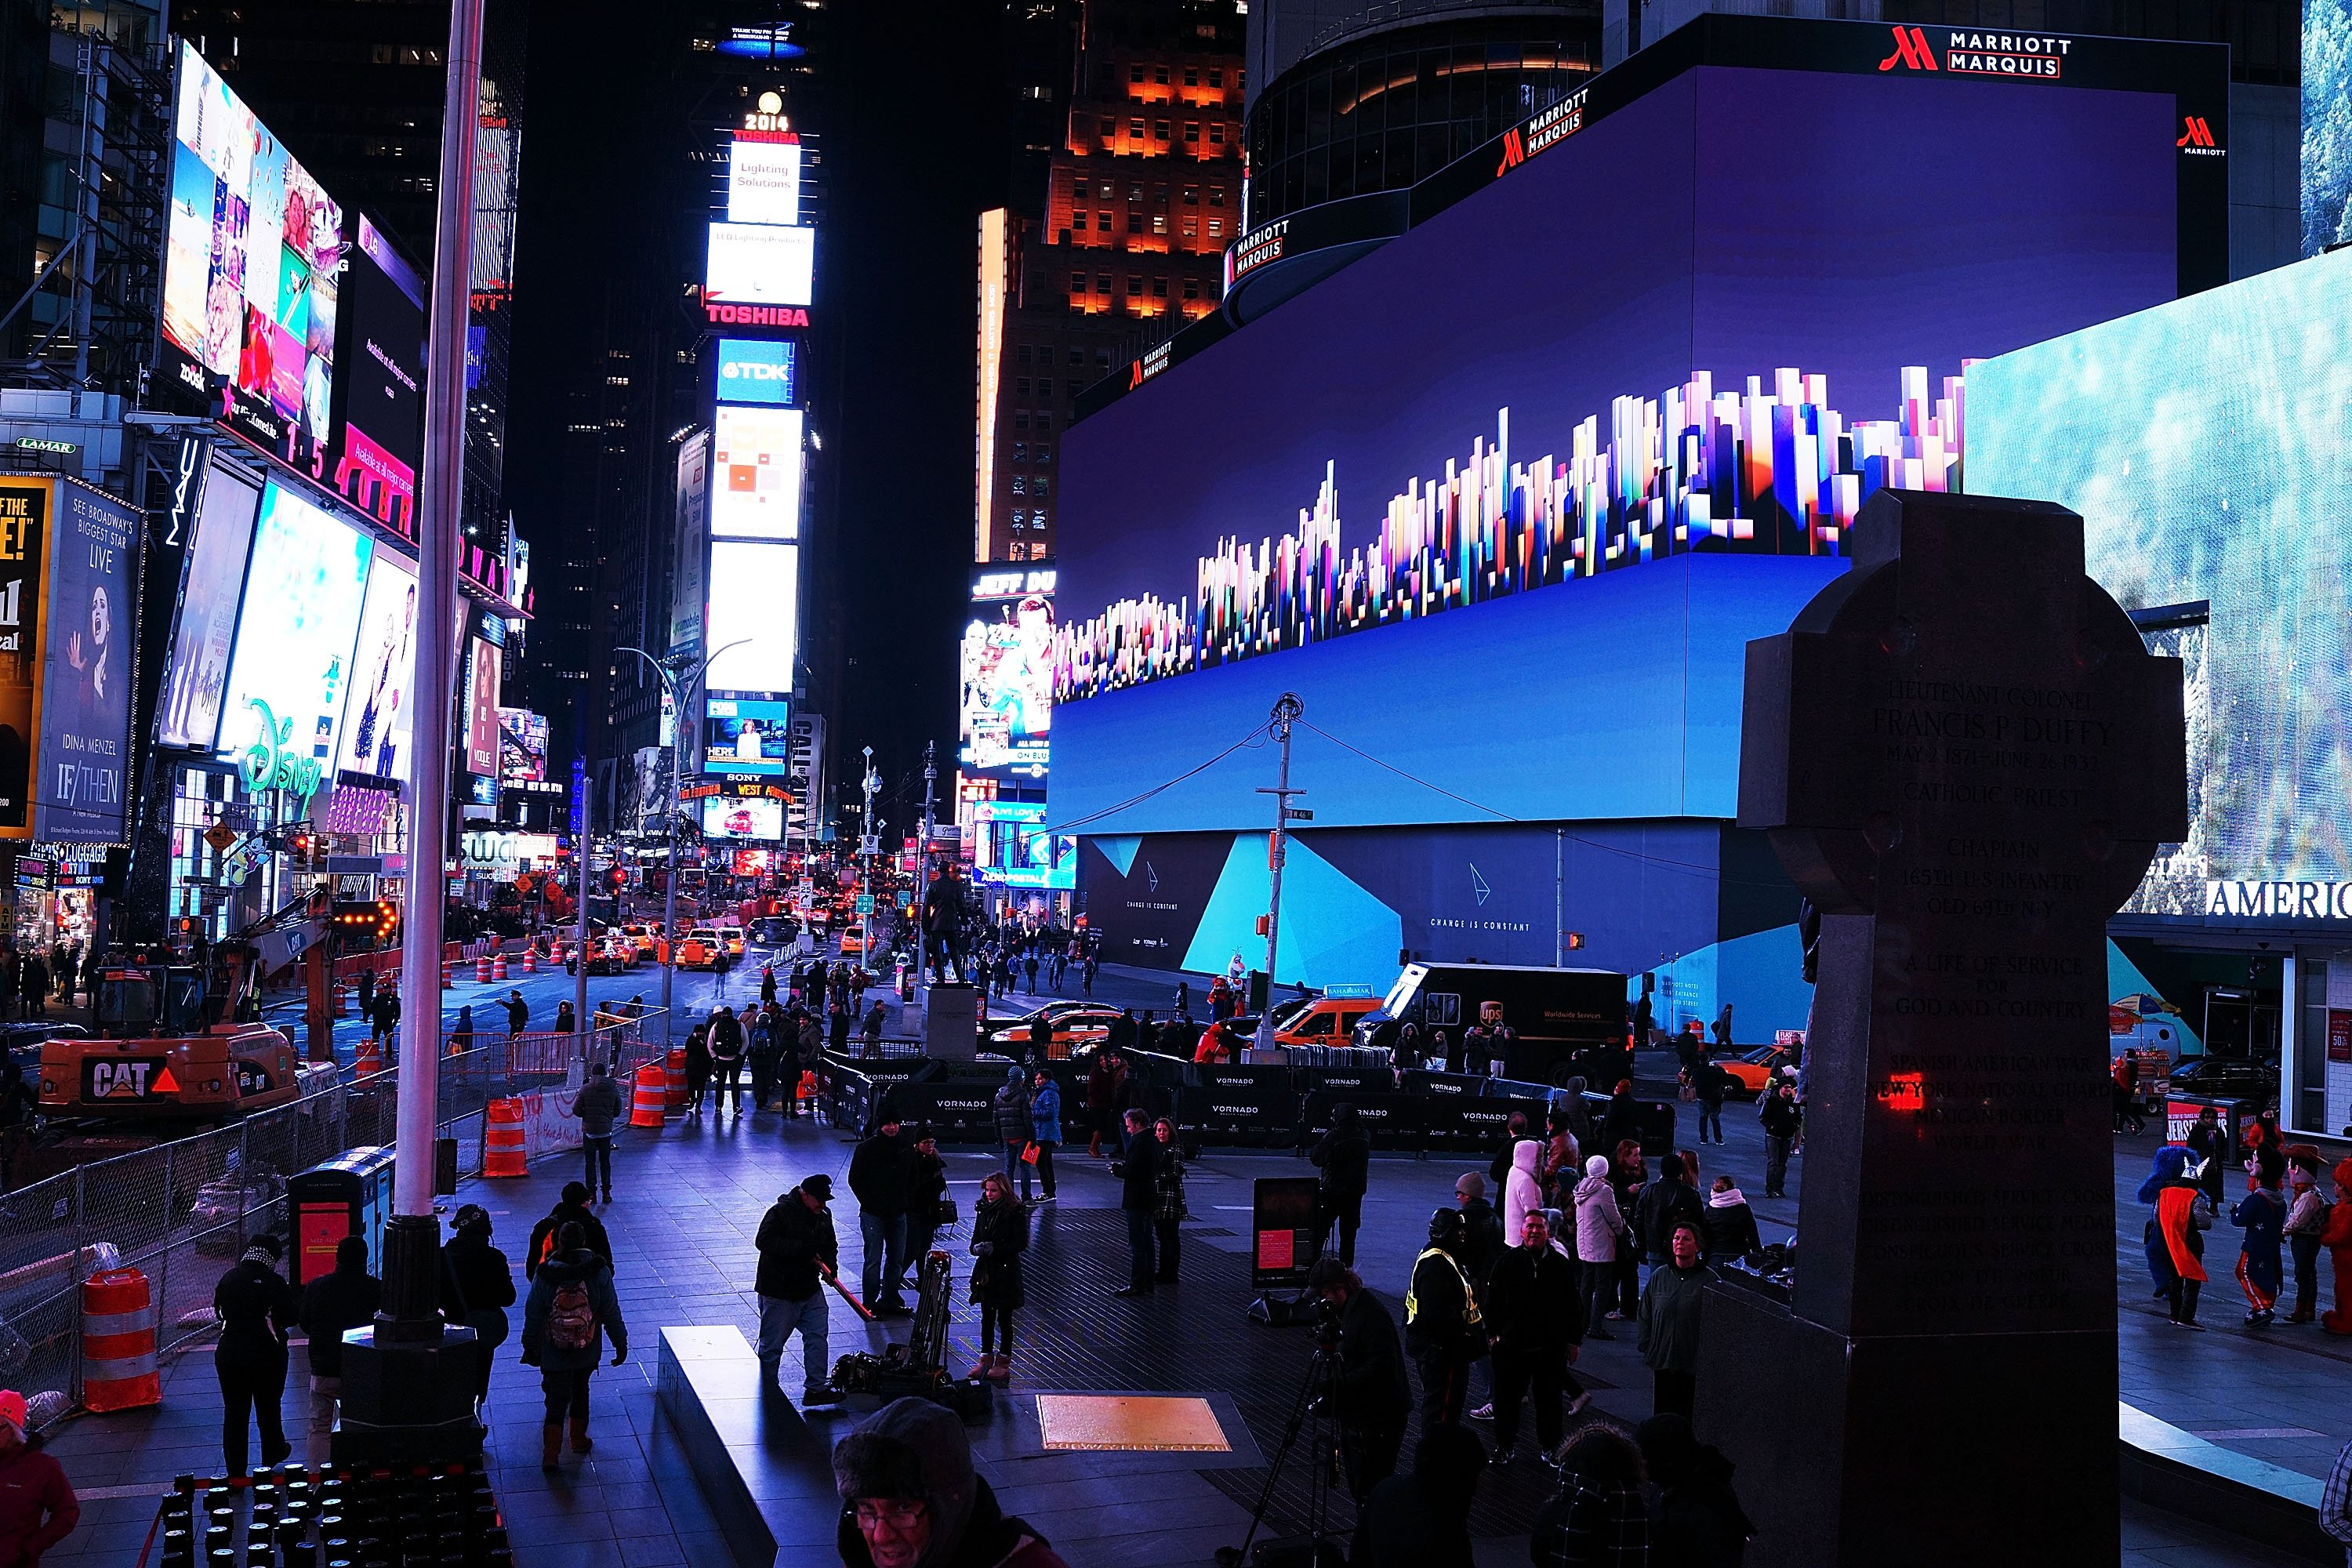 Billed as Times Square's largest and most expensive digital billboard, a new megascreen is debuted in front of the Marriott Marquis hotel on Nov.18, 2014 in New York City.